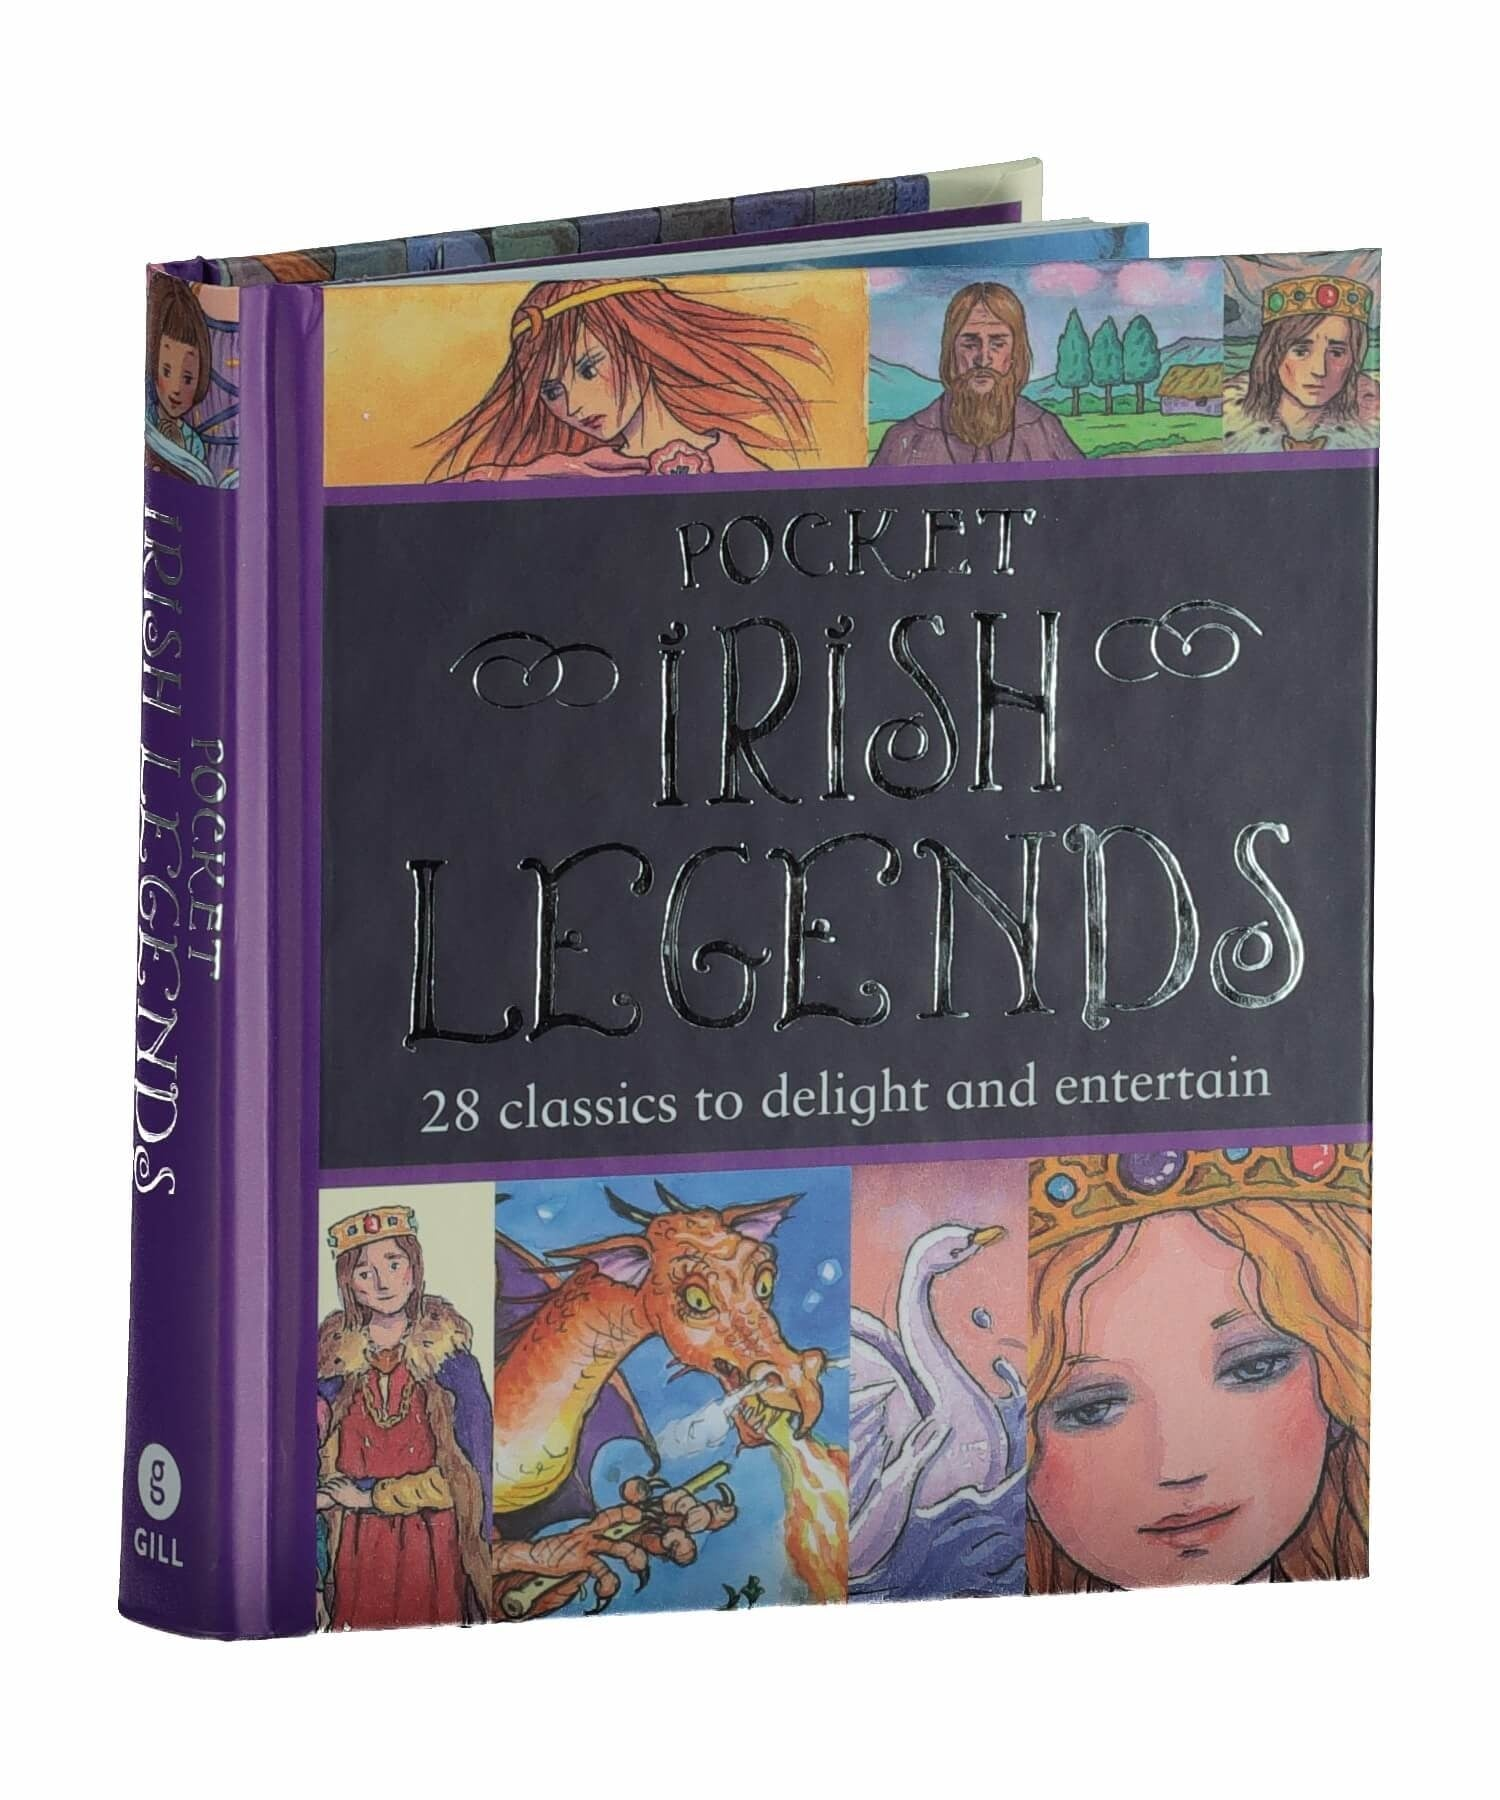 Pocket - Irish Legends - [Gill & MacMillan] - Books & Stationery - Irish Gifts